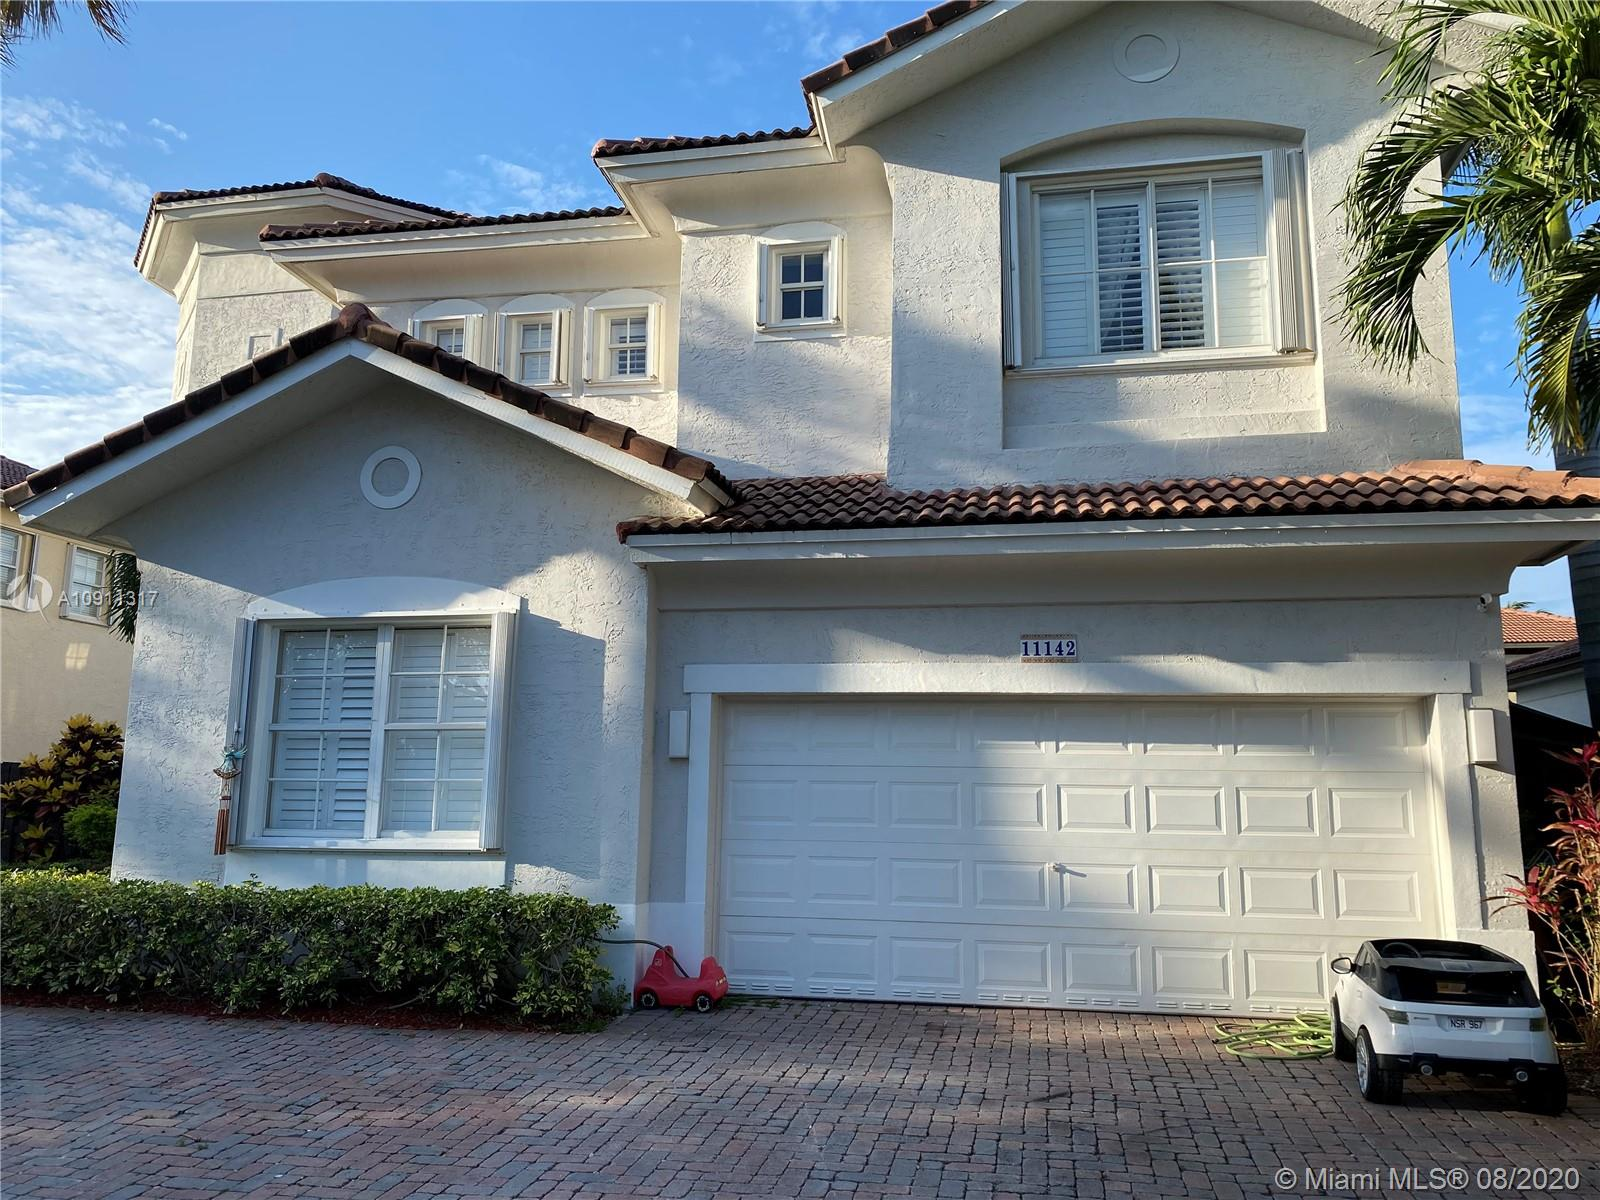 Doral Isles #11142 - 11142 NW 11142 nw 71 ter #11142, Doral, FL 33178